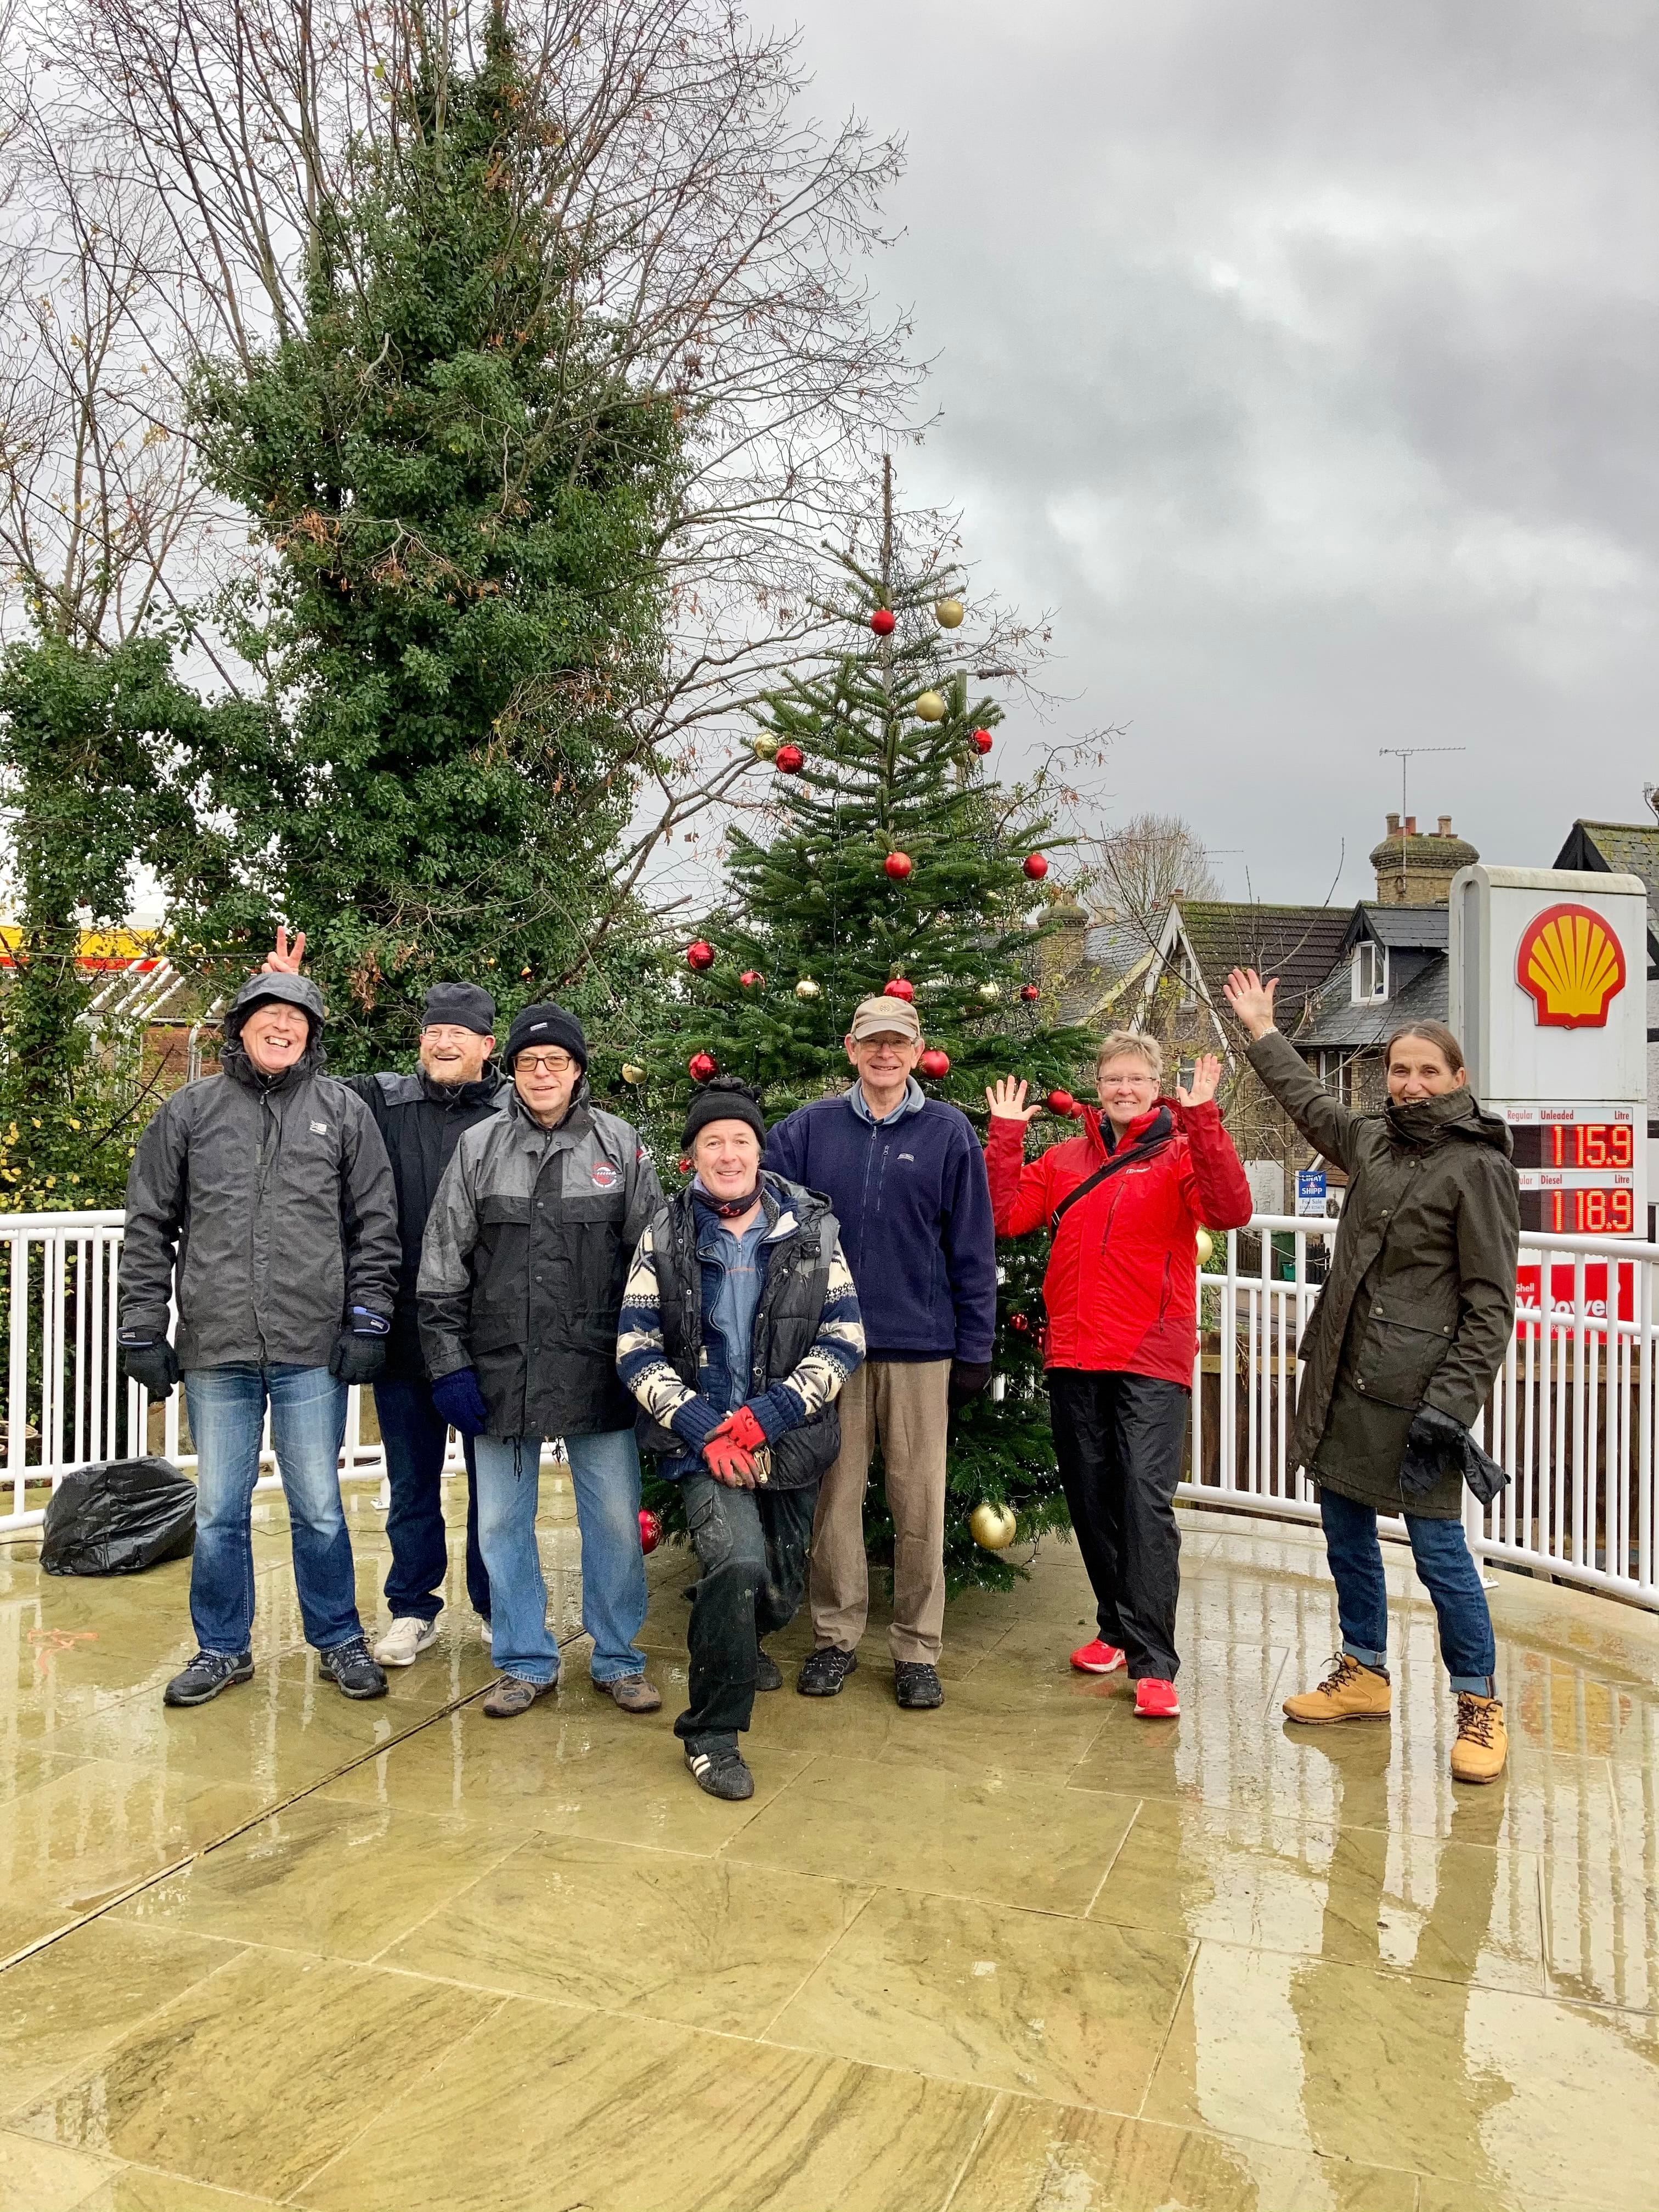 Our group of workers putting the Christmas tree up